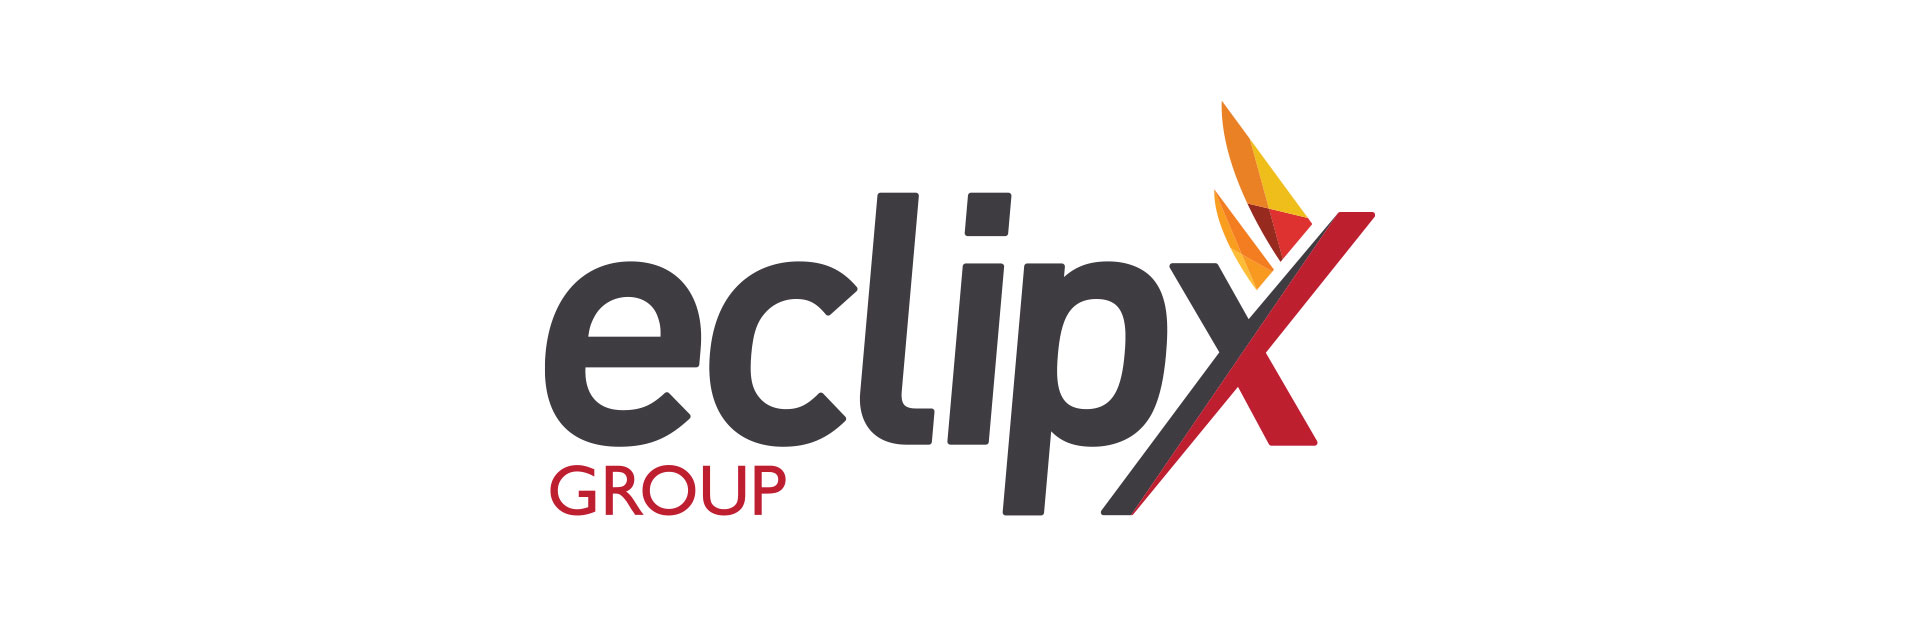 Eclipx Group